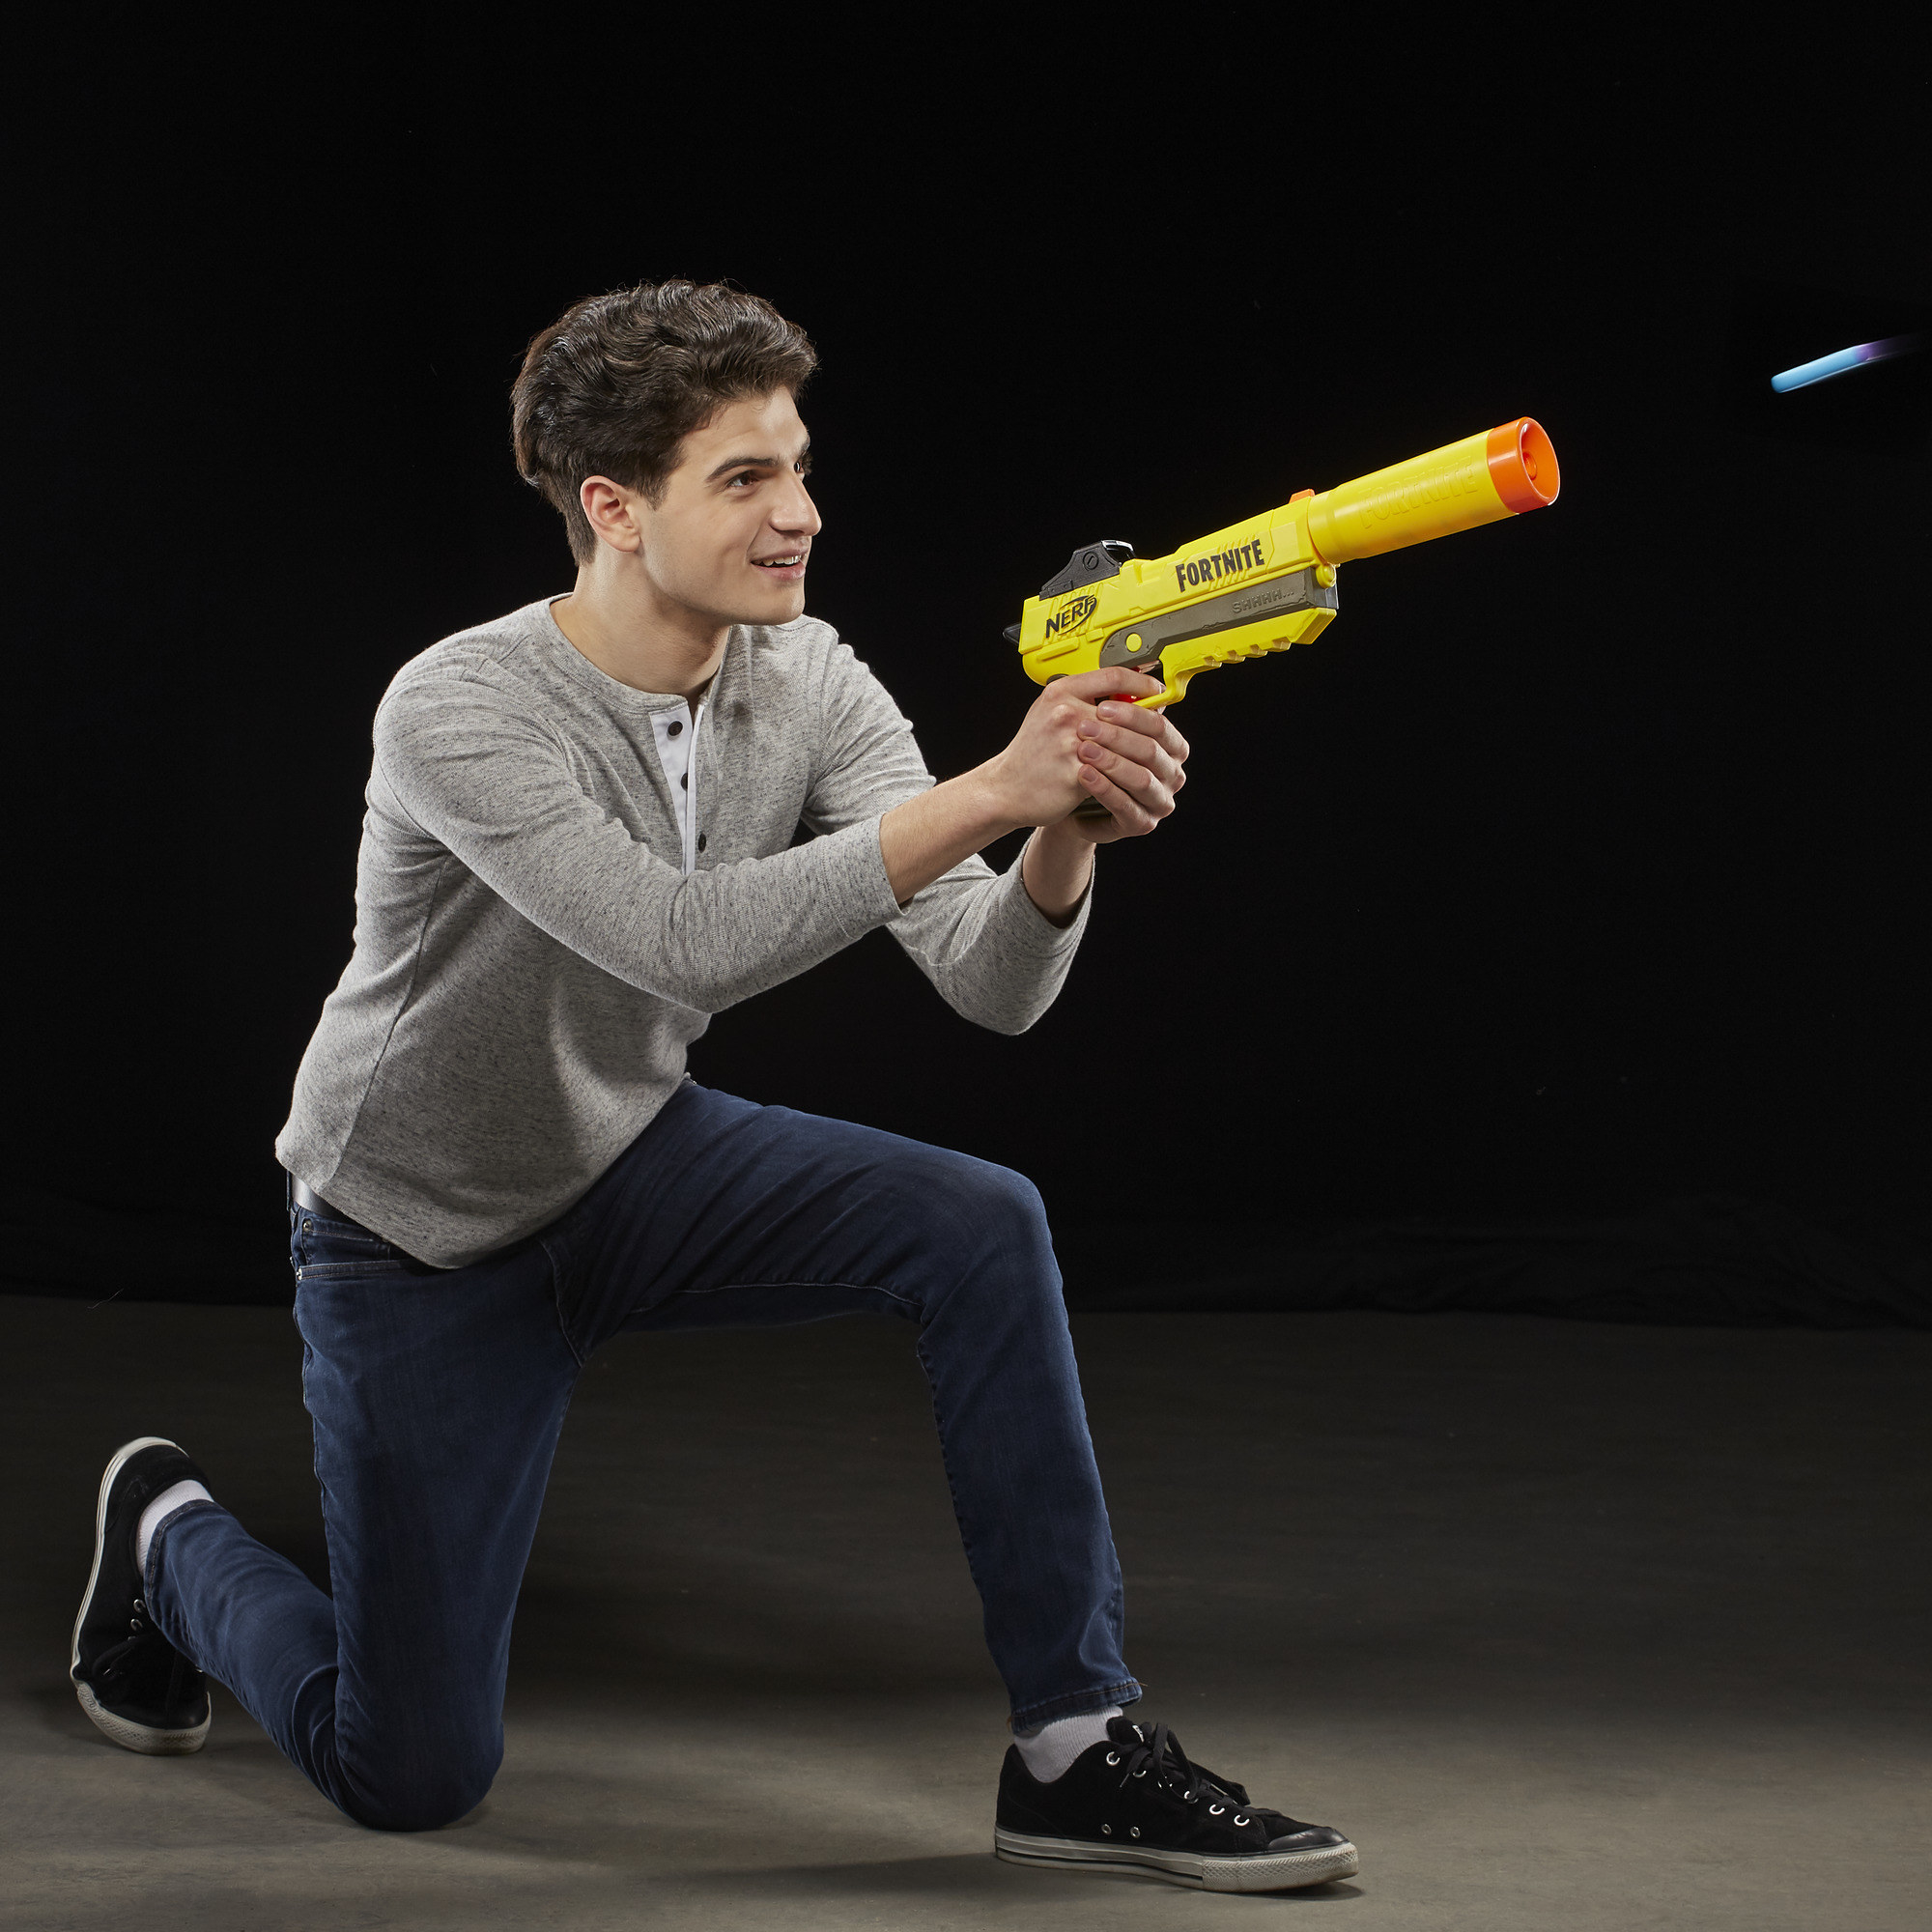 The Nerf blaster, which shoots small foam rubber darts from its barrel